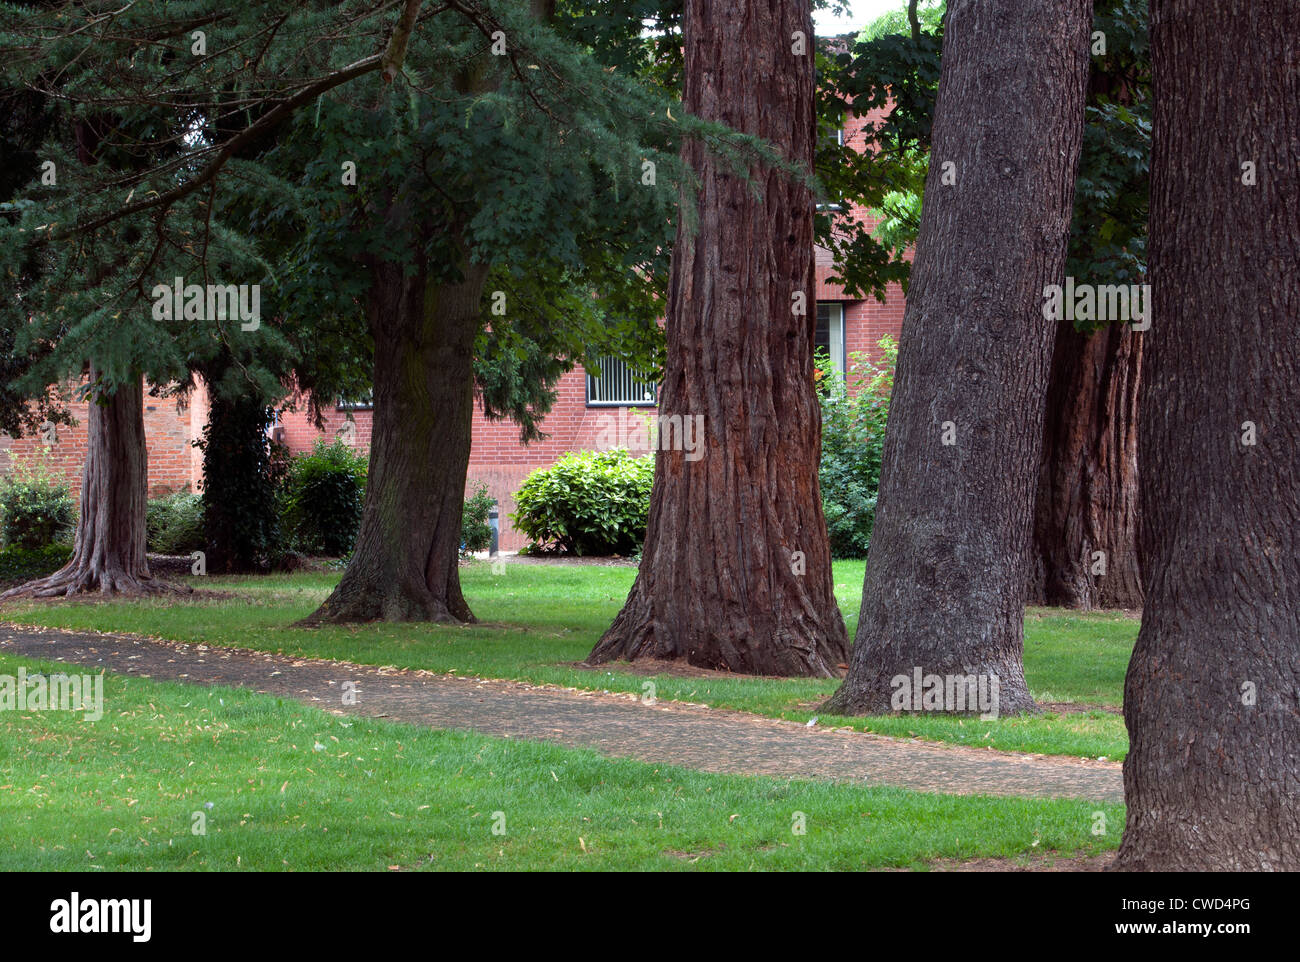 The Firs Gardens, Stratford-upon-Avon, UK - Stock Image